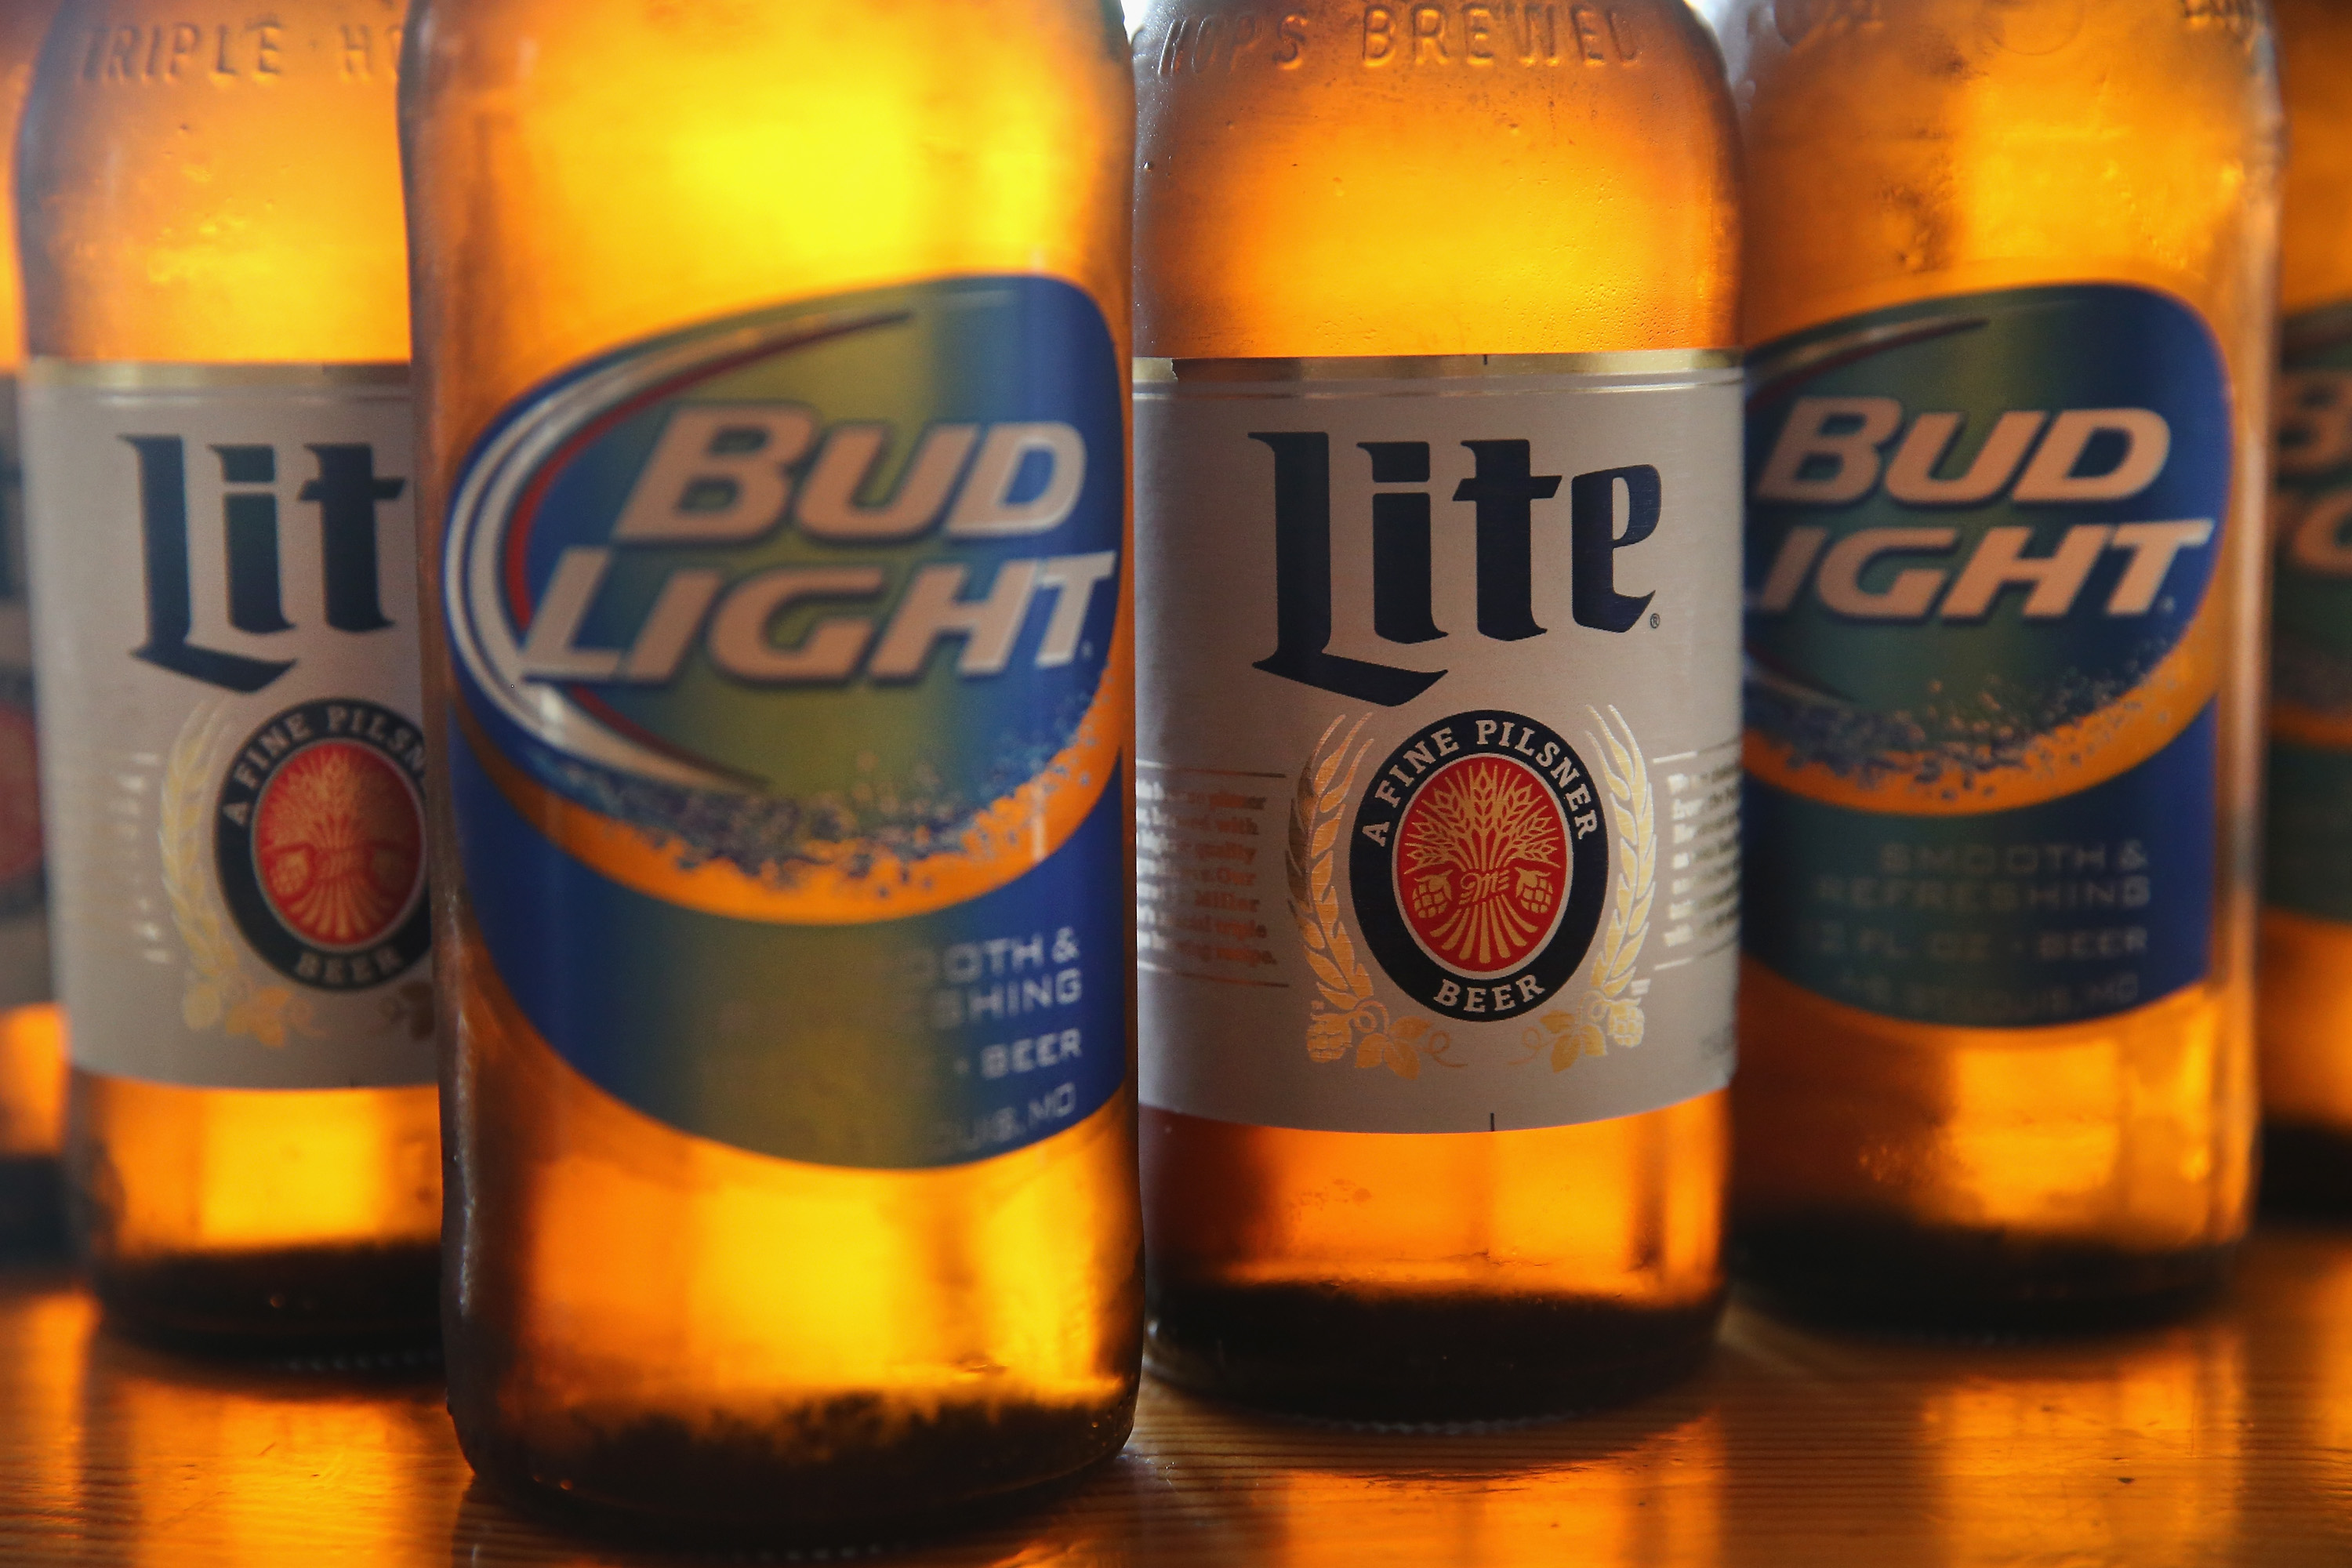 New Anheuser Busch App Will Deliver 100 Cases Of Bud Light To Your Door  Within An Hour